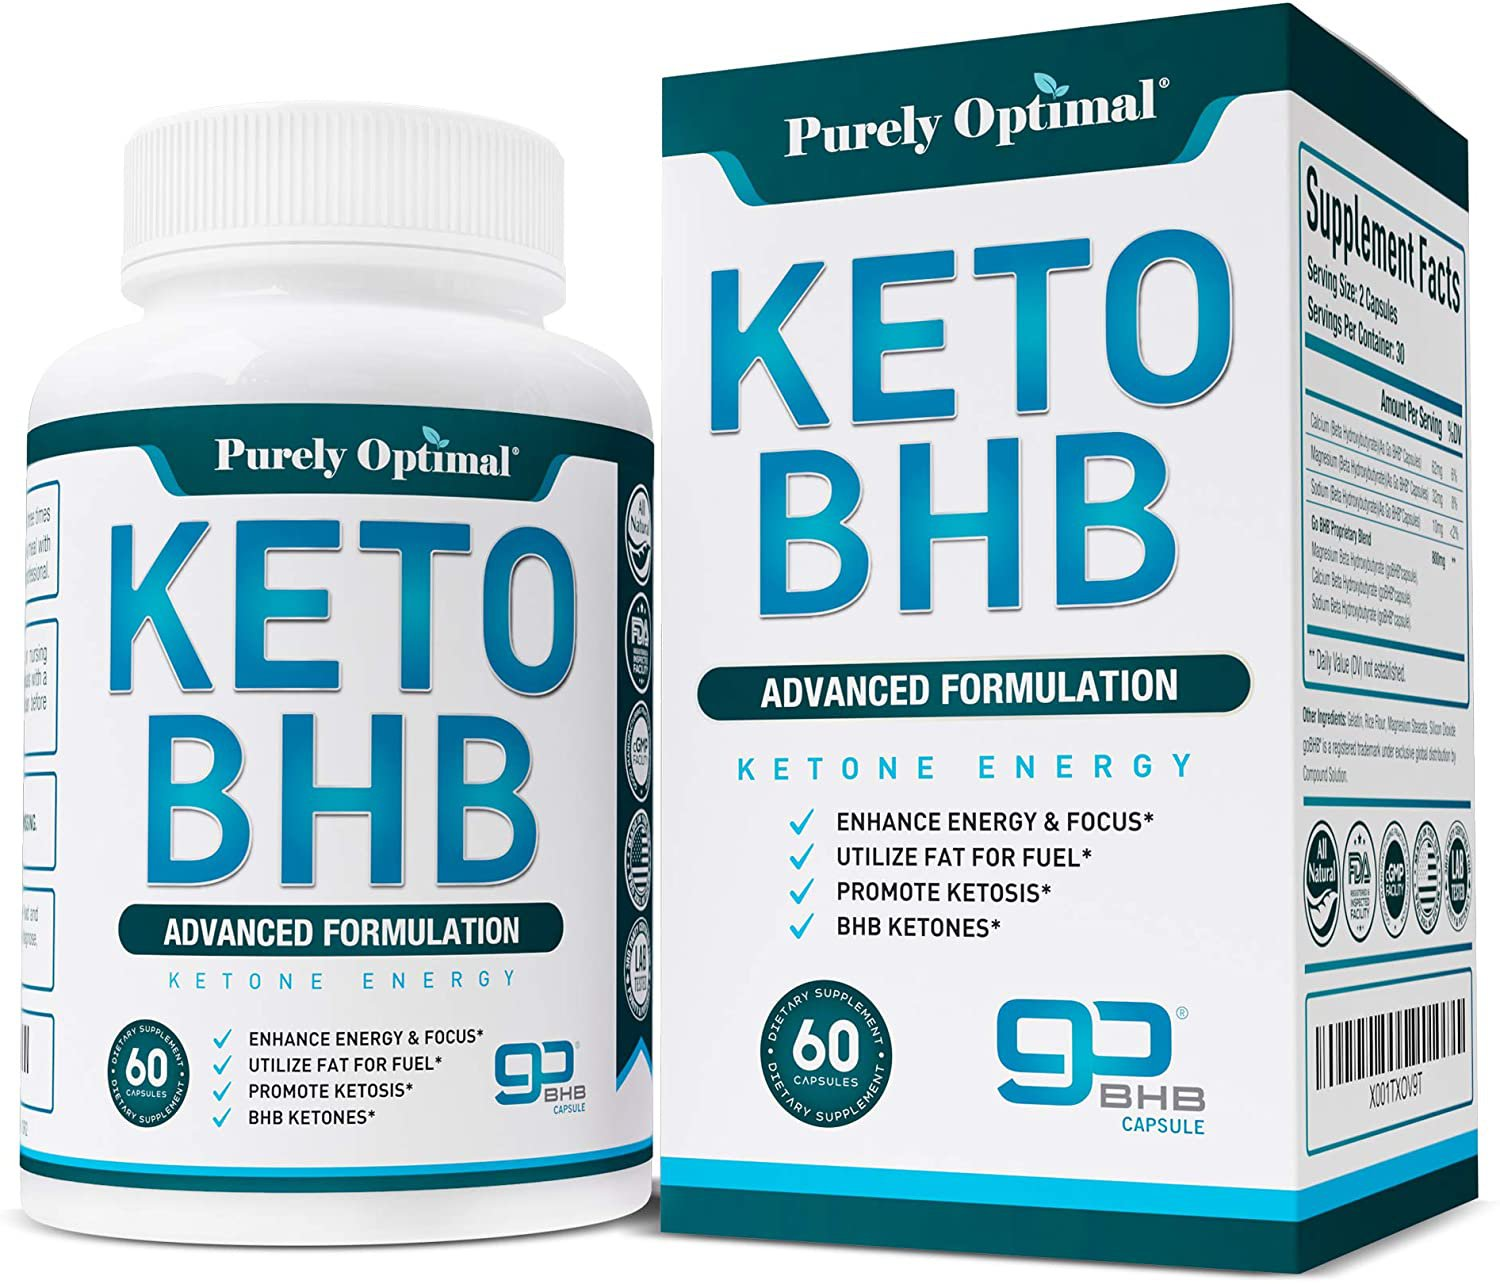 Premium Keto Diet Pills - Utilize Fat for Energy with Ketosis